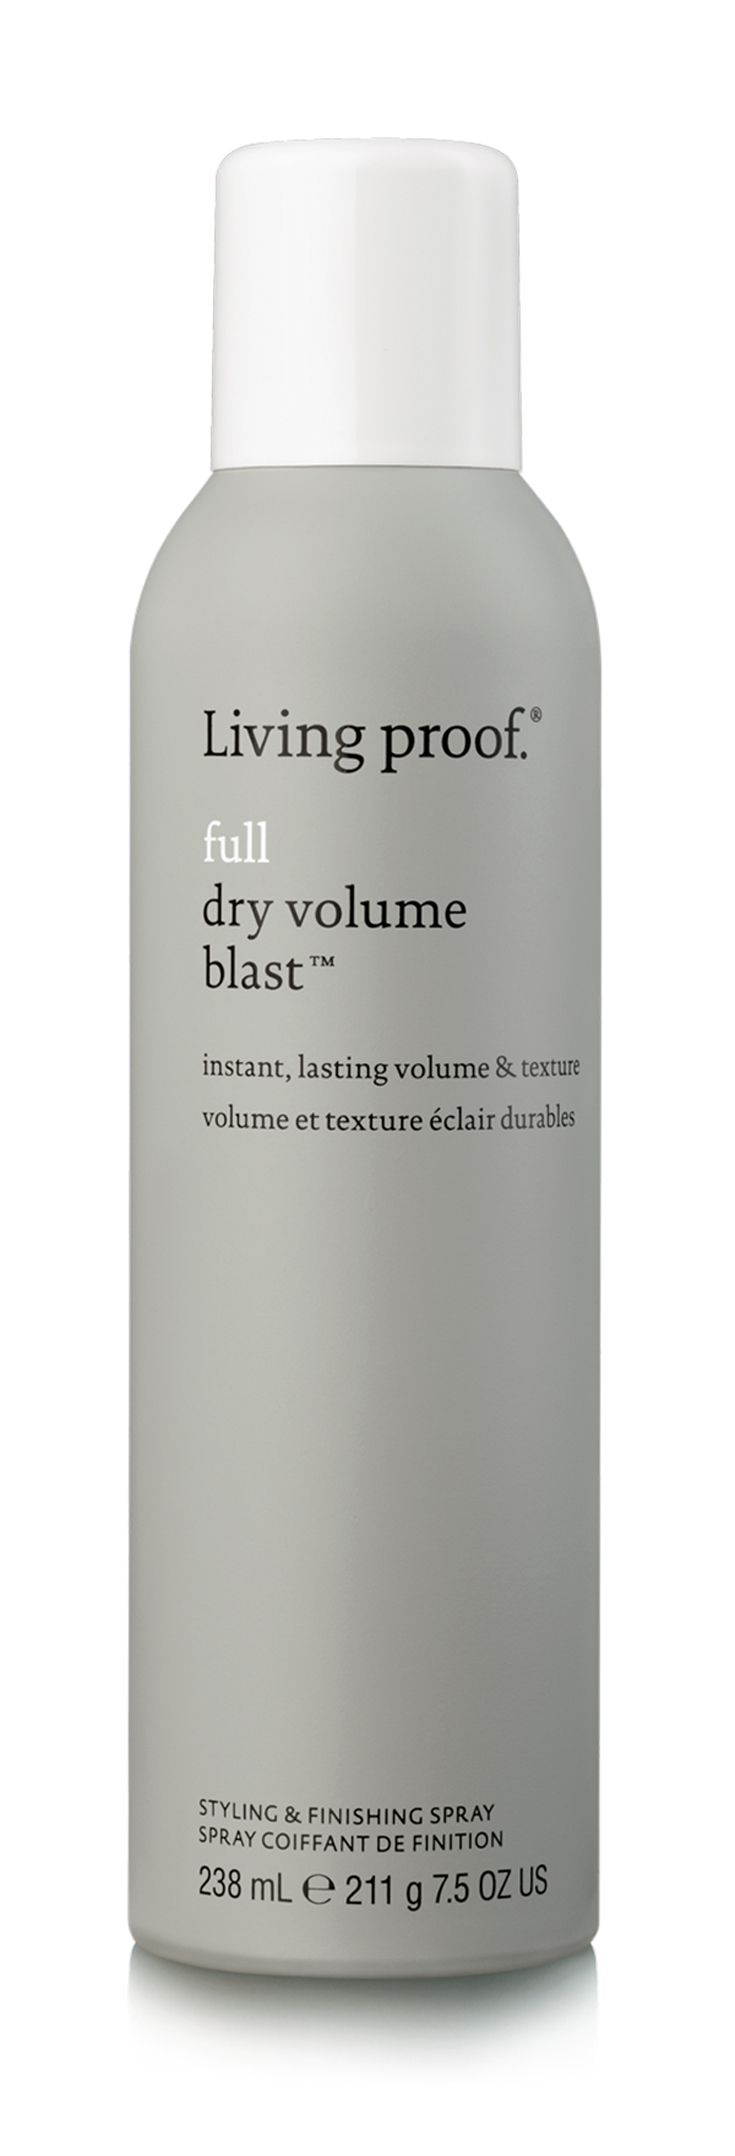 Living Proof Full Dry Volume Blast creates volume and texture that's (almost) ...